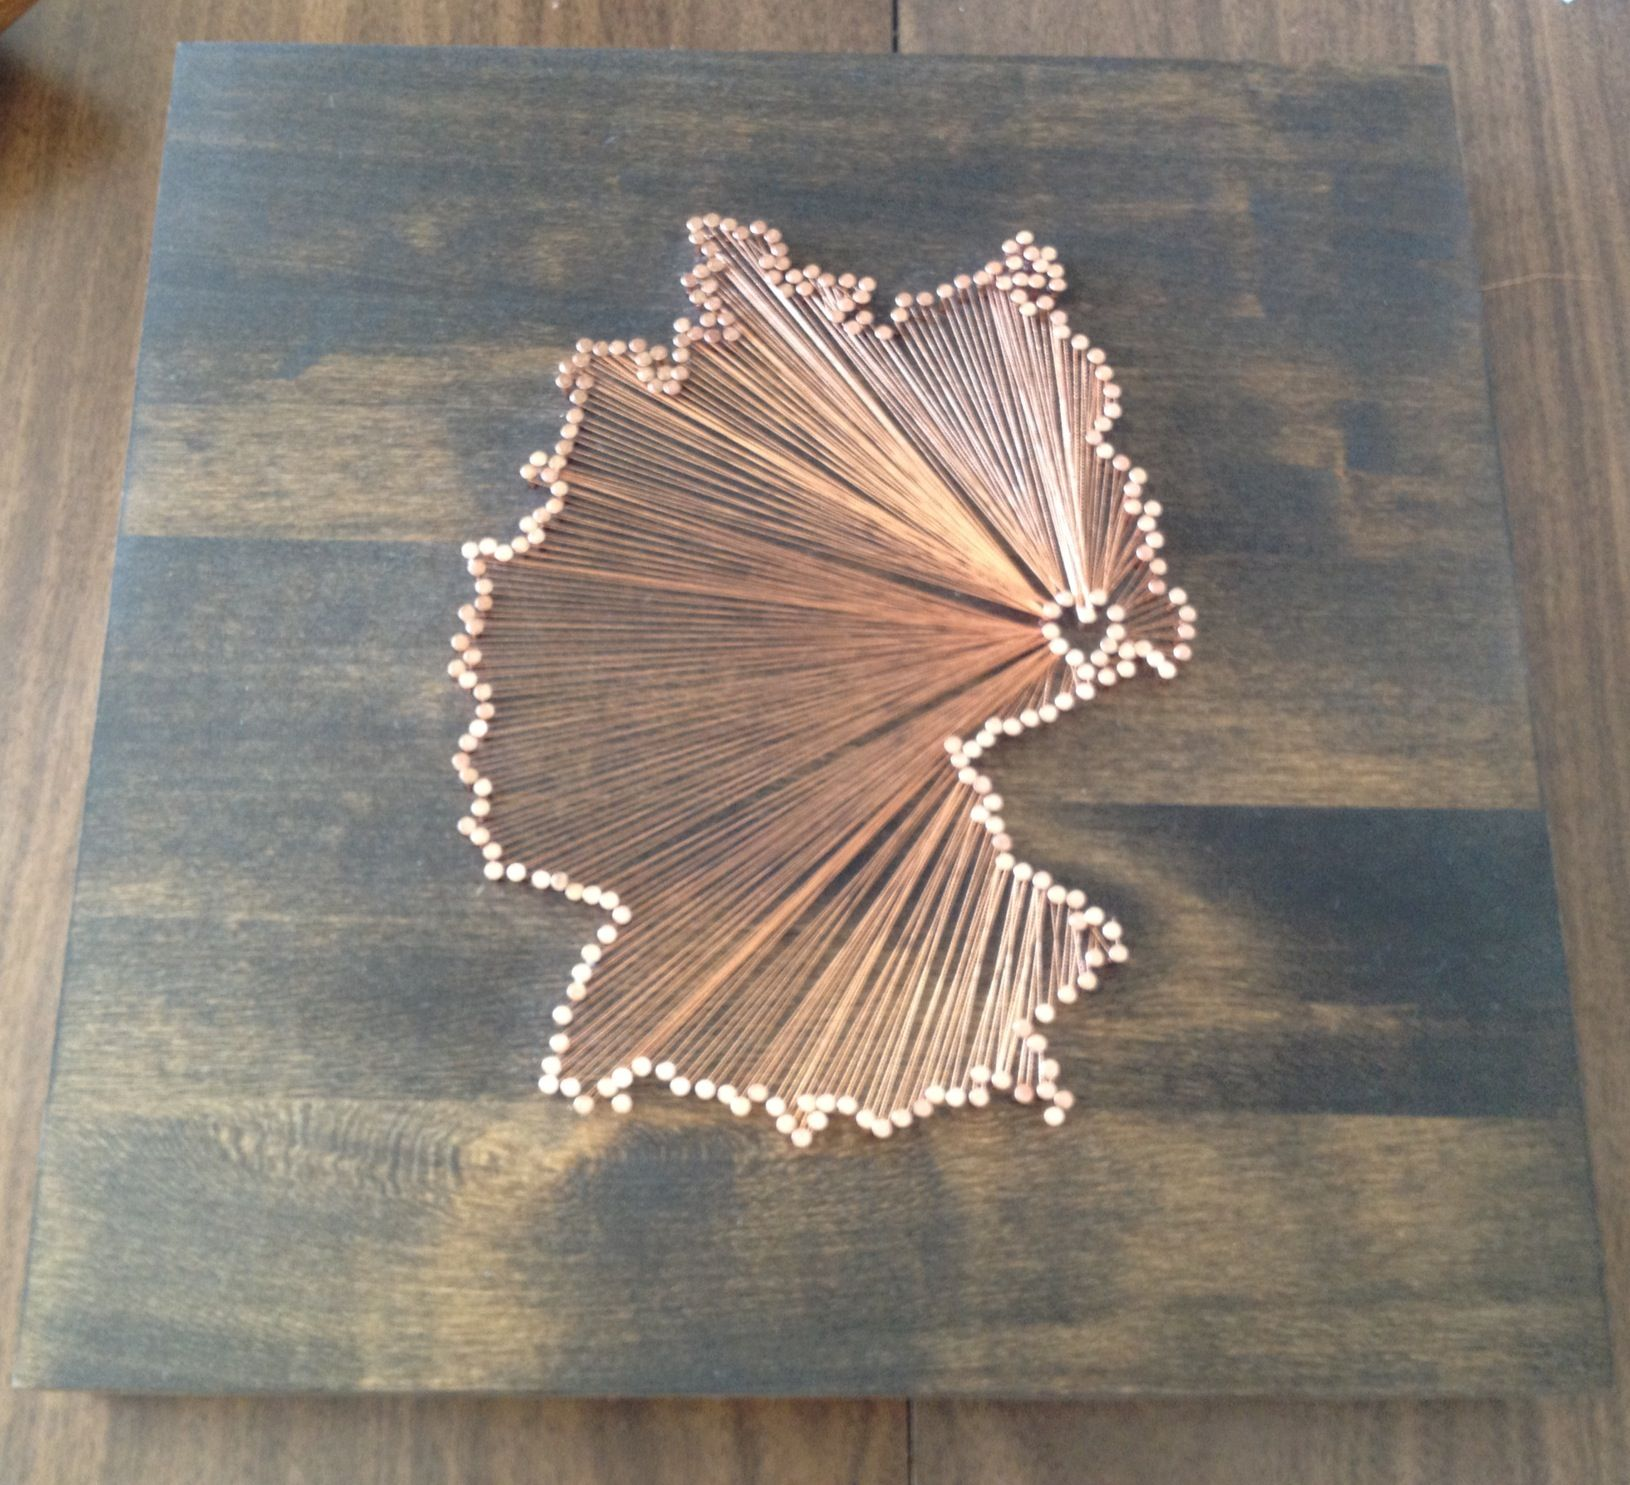 String Art Of Germany With My Hometown Dresden As The